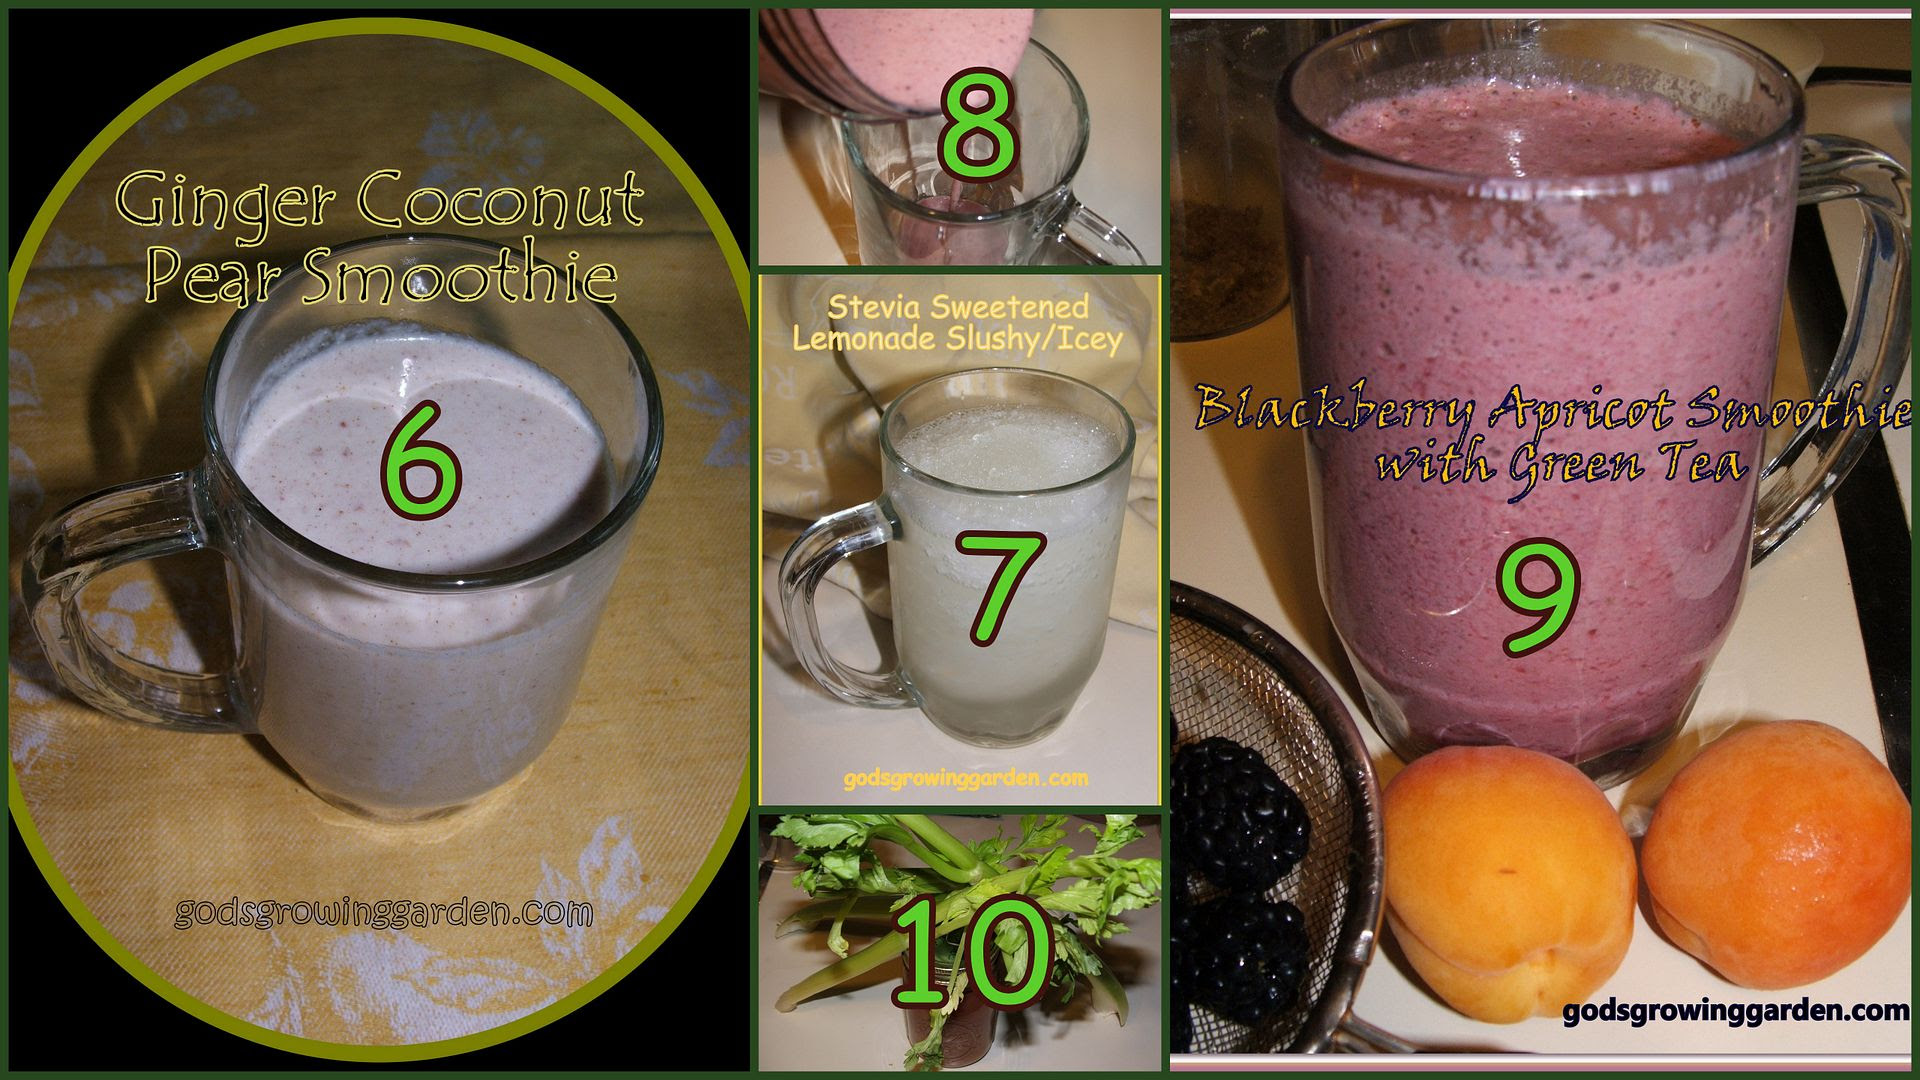 Beverage by Angie Ouellette-Tower for godsgrowinggarden.com photo 2013-01-05_zpsbcb46a2a.jpg